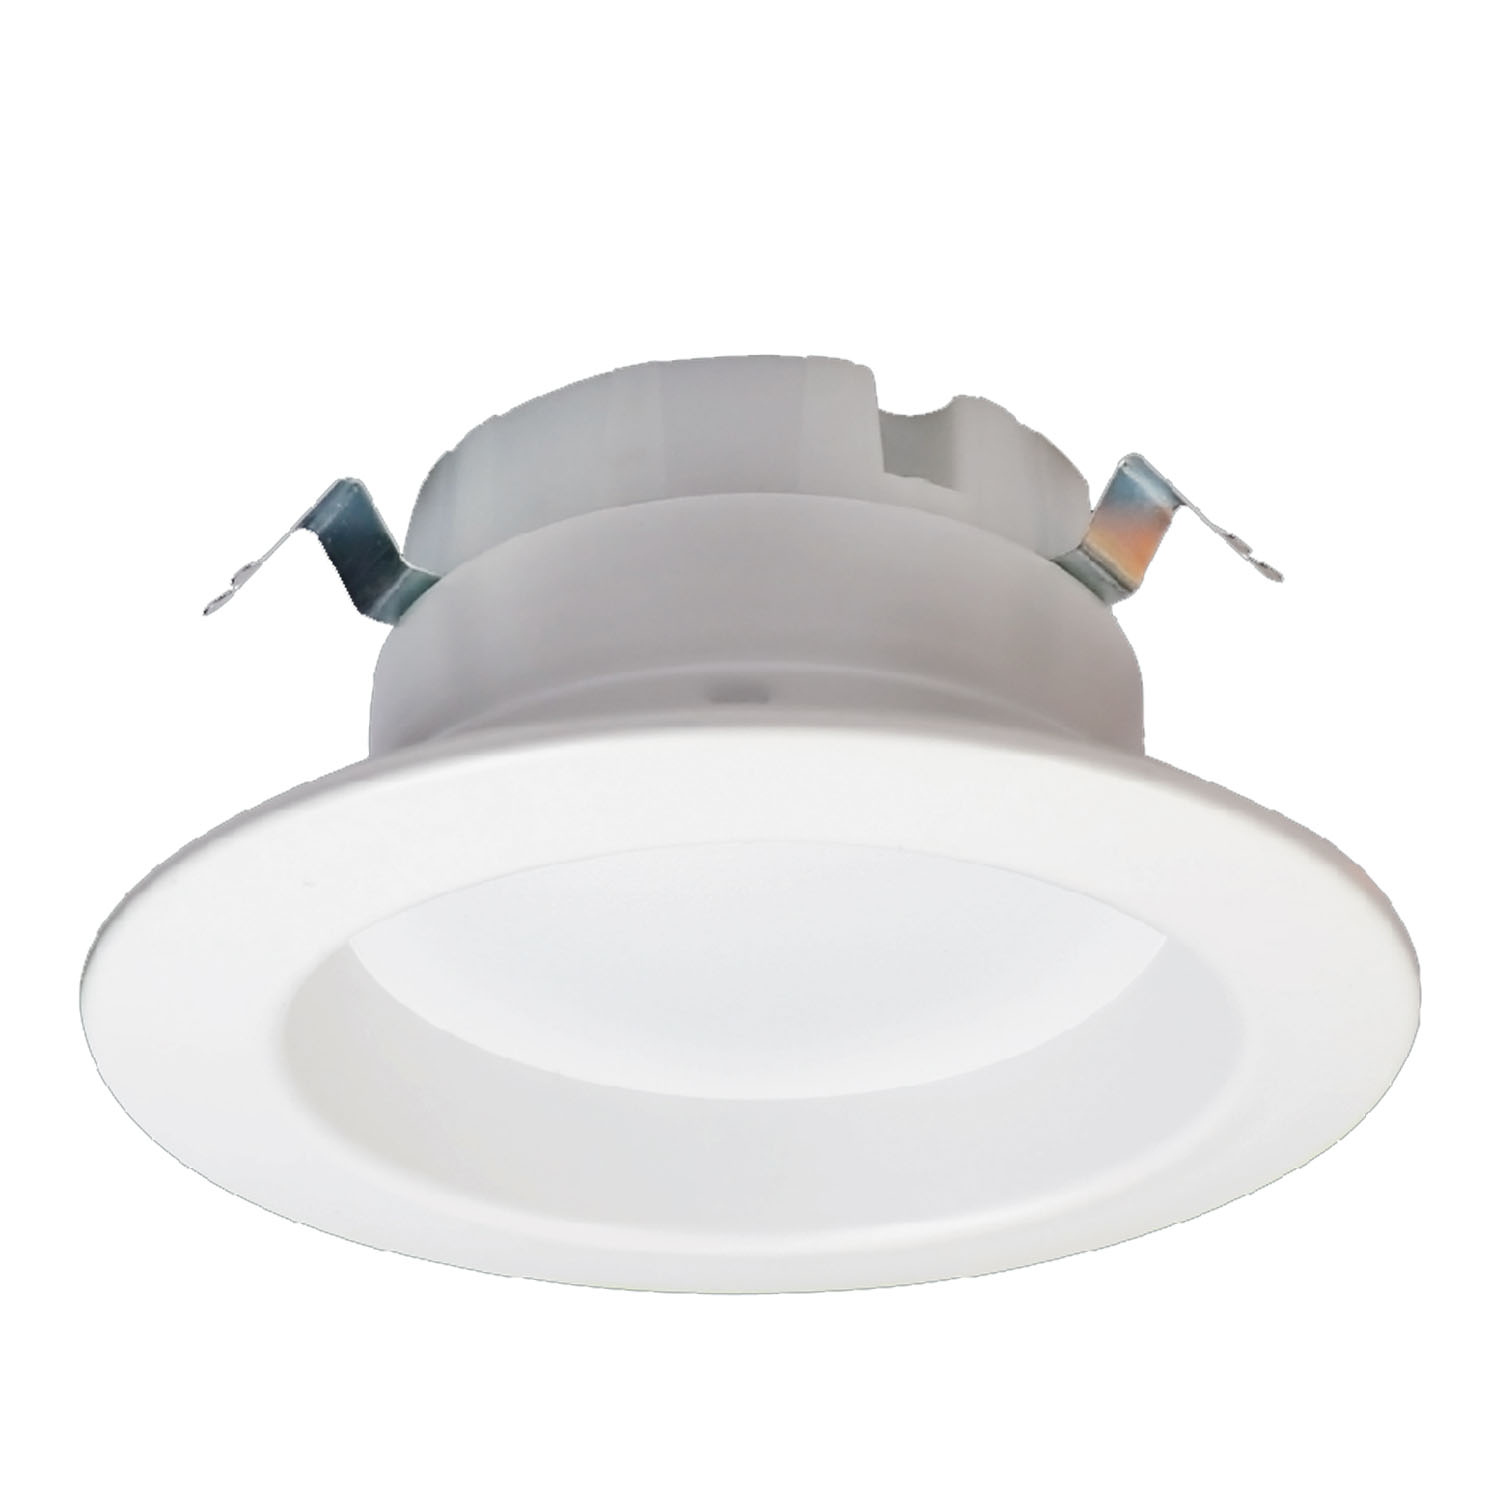 "DL4FR10/930/ECO/LED2 99634 4"" Retrofit Downlight, 10W, 3000K, Dimmable ProLED ECO Series II"